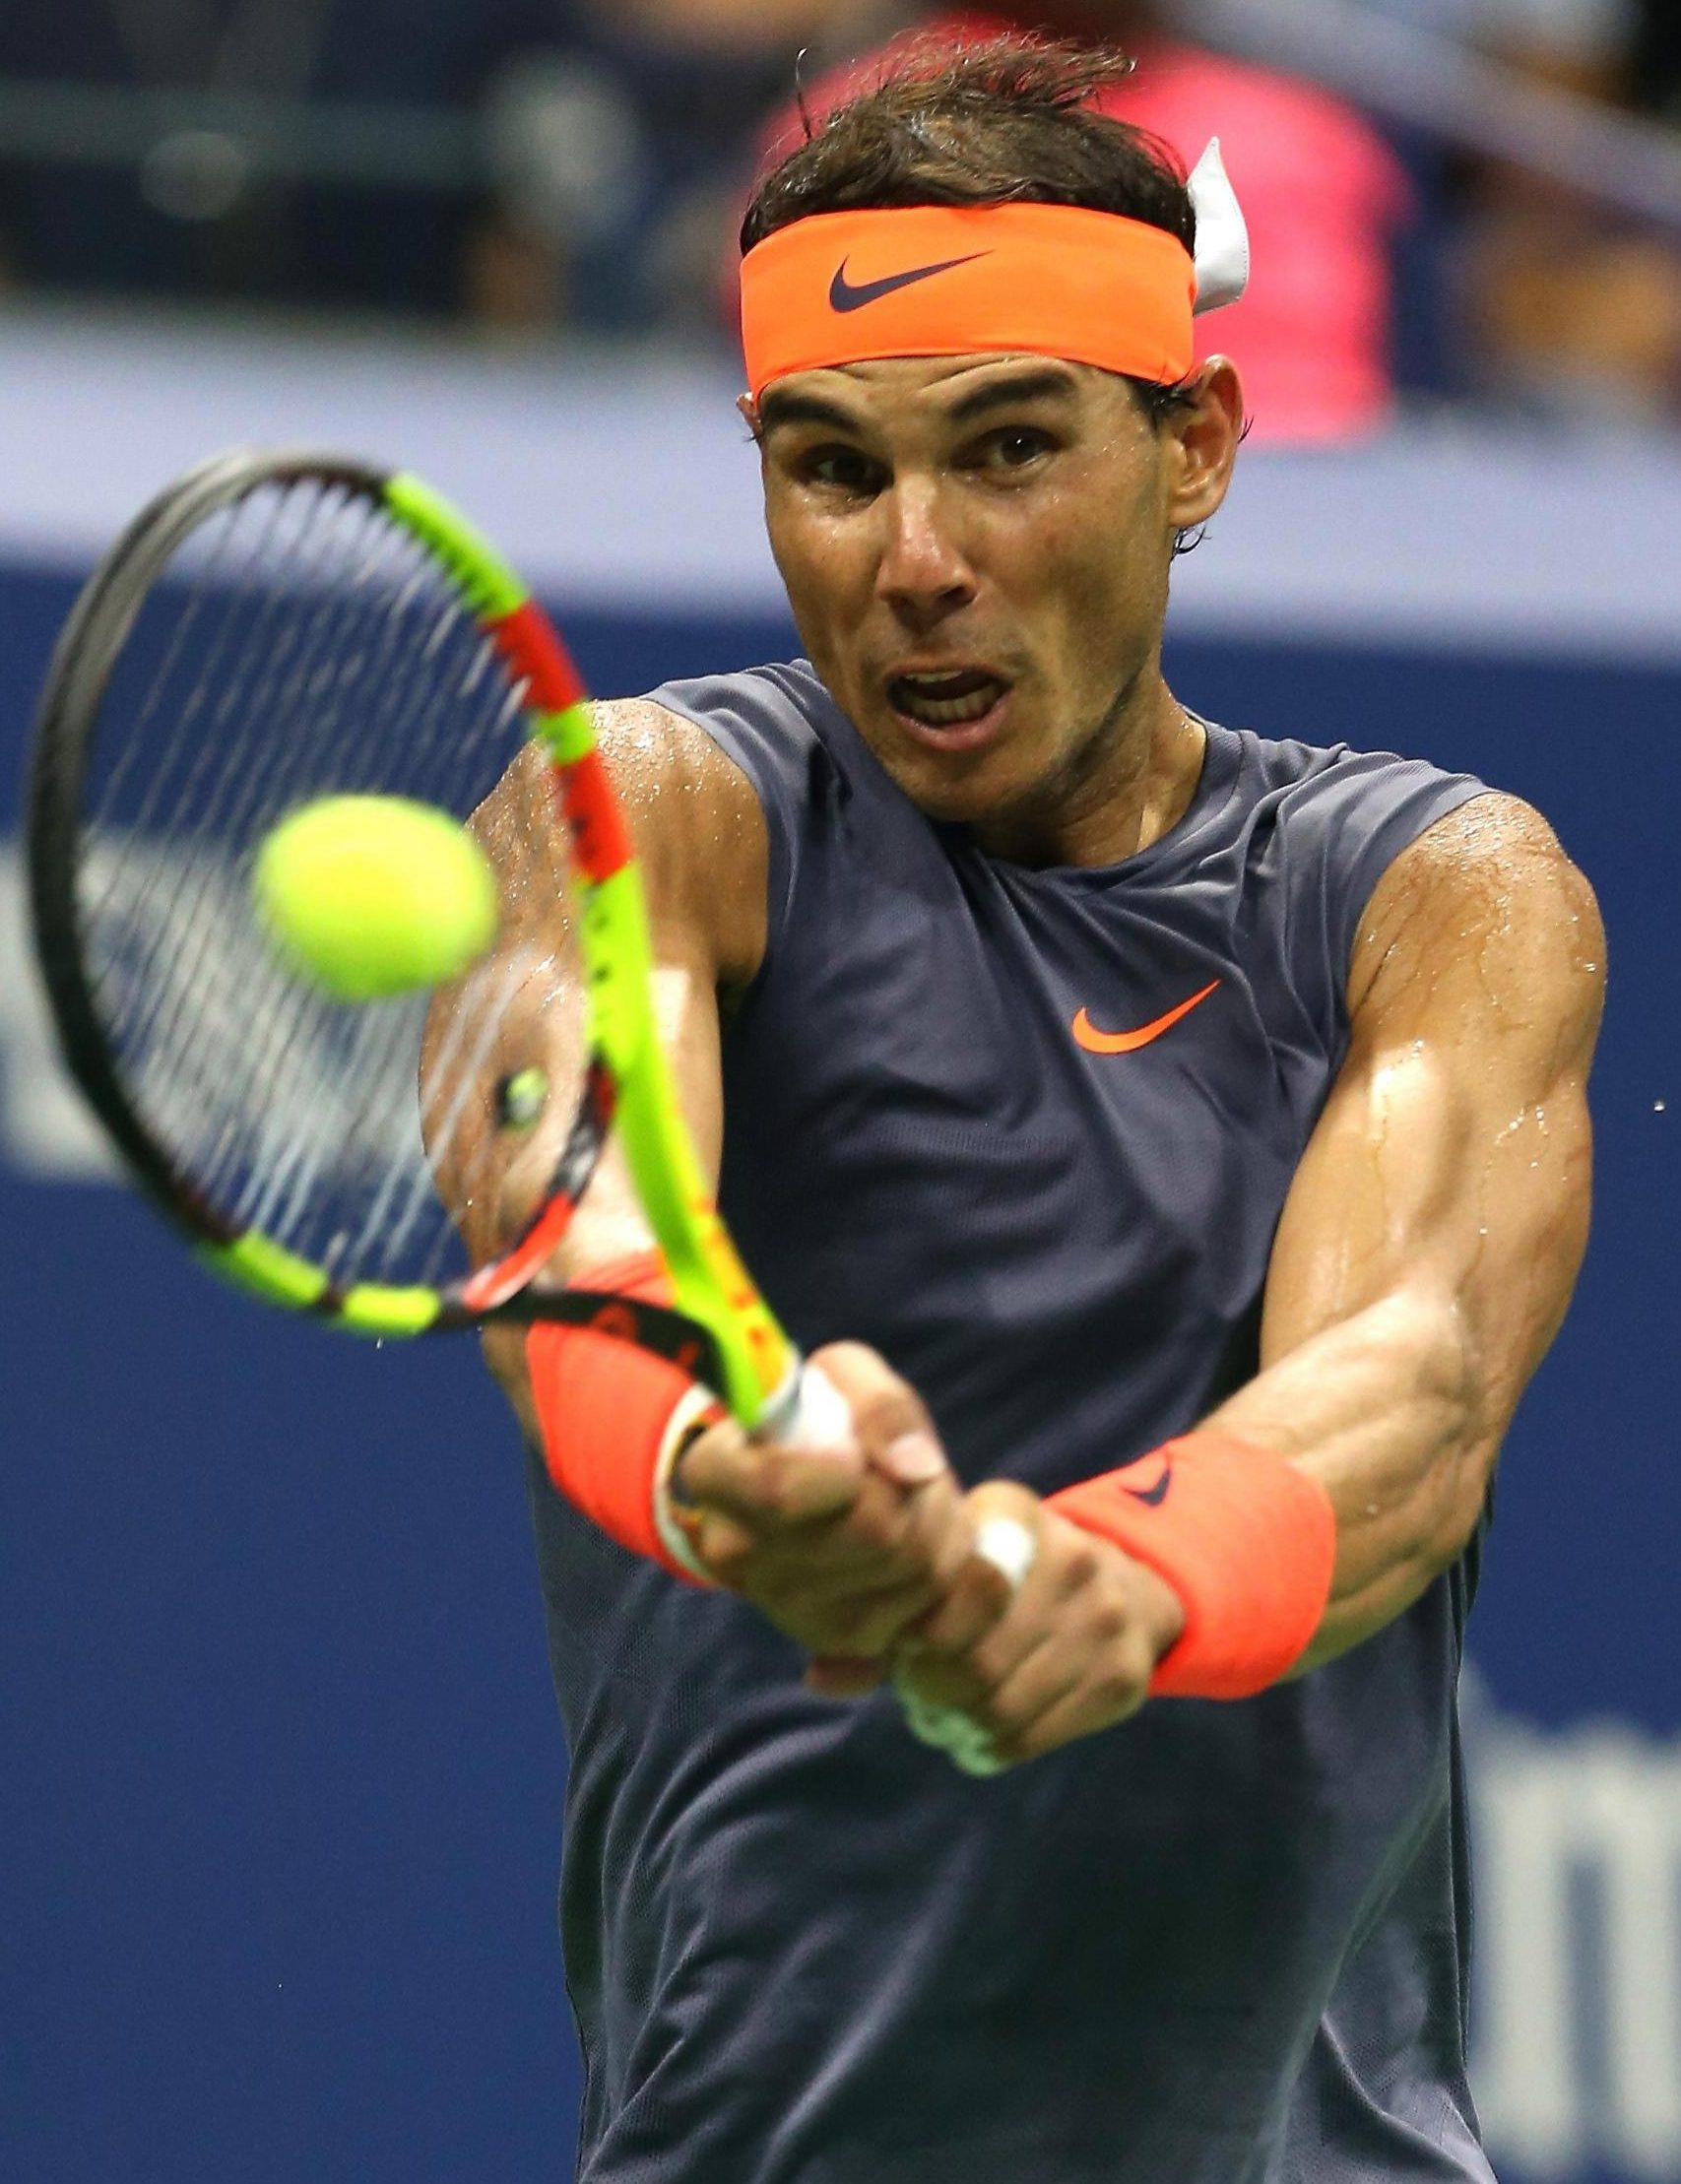 Rafa Nadal has offered rooms to those affected by the Majorca floods